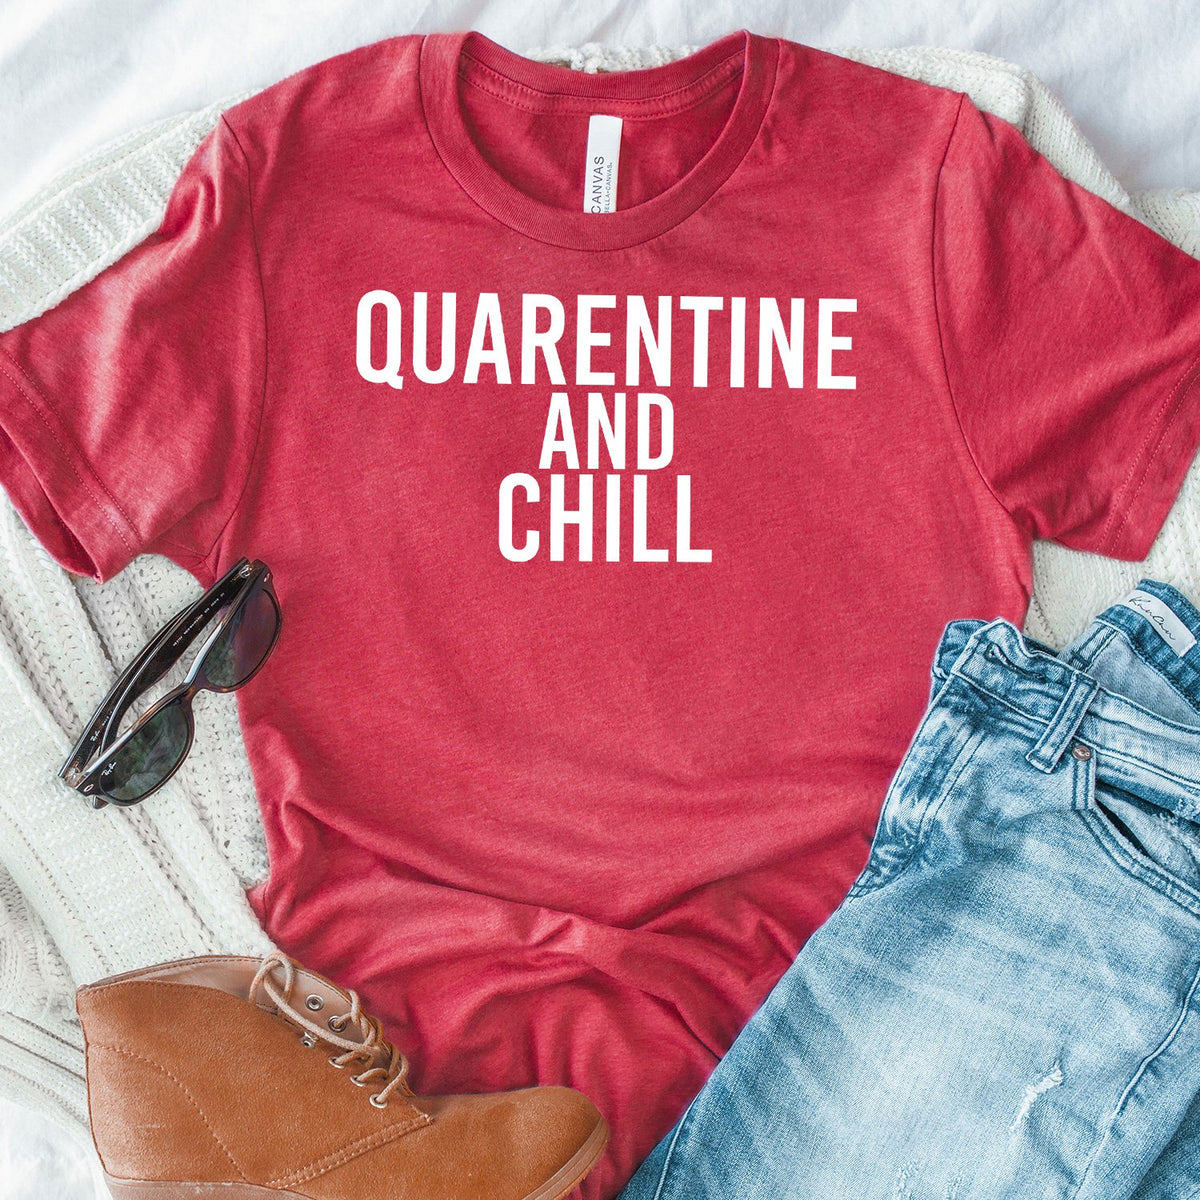 Quarantine and Chill - Short Sleeve Tee Shirt